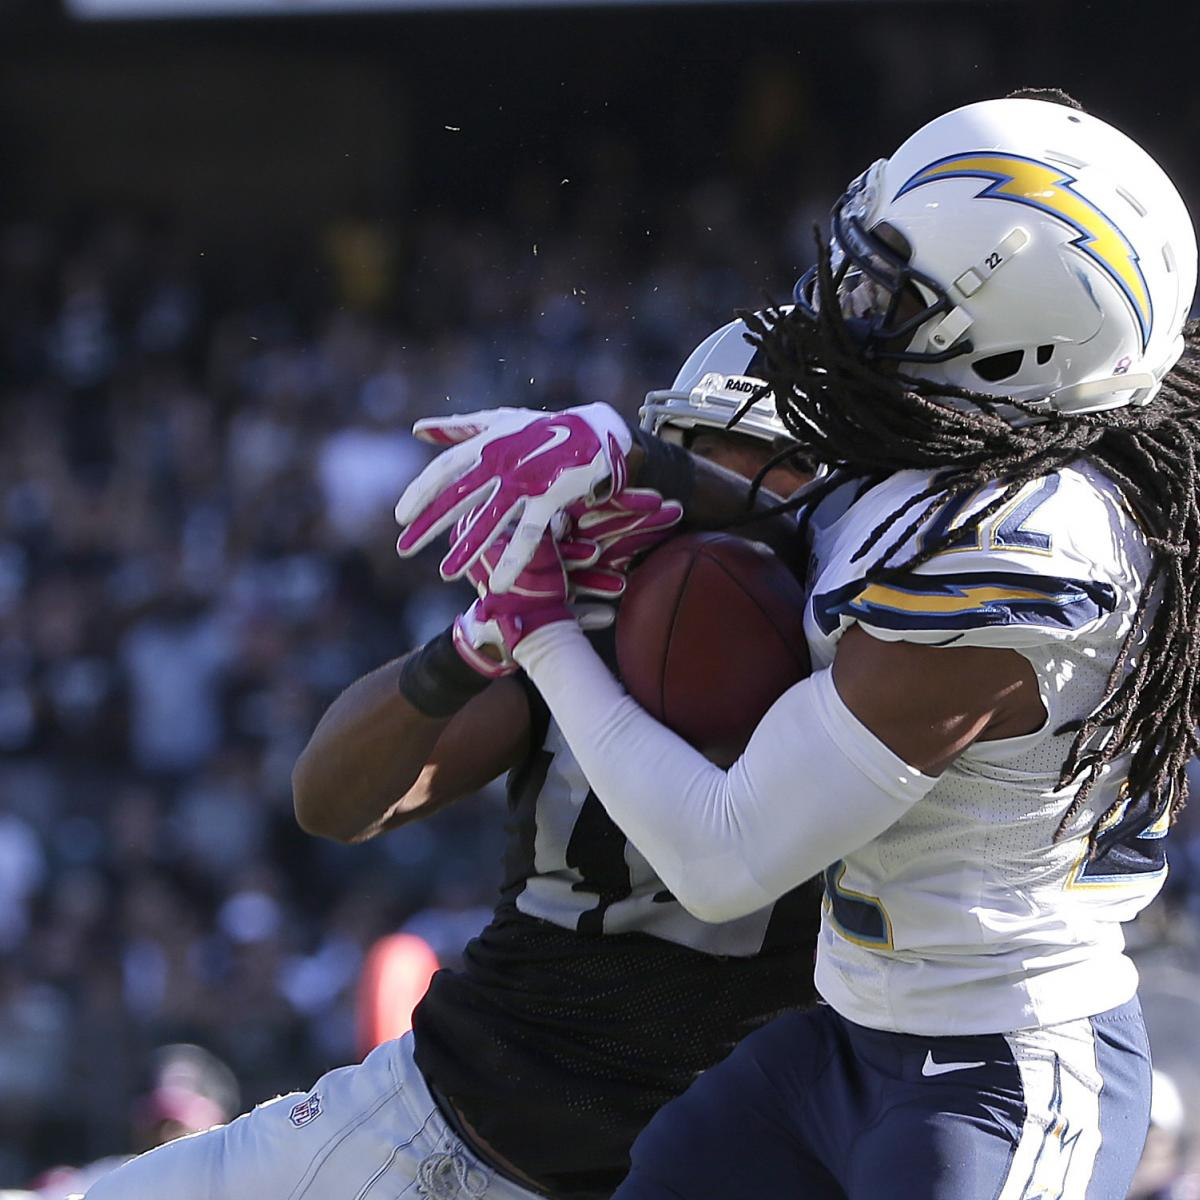 San Diego Chargers Game Score: Chargers Vs. Raiders: Live Score And Analysis For San